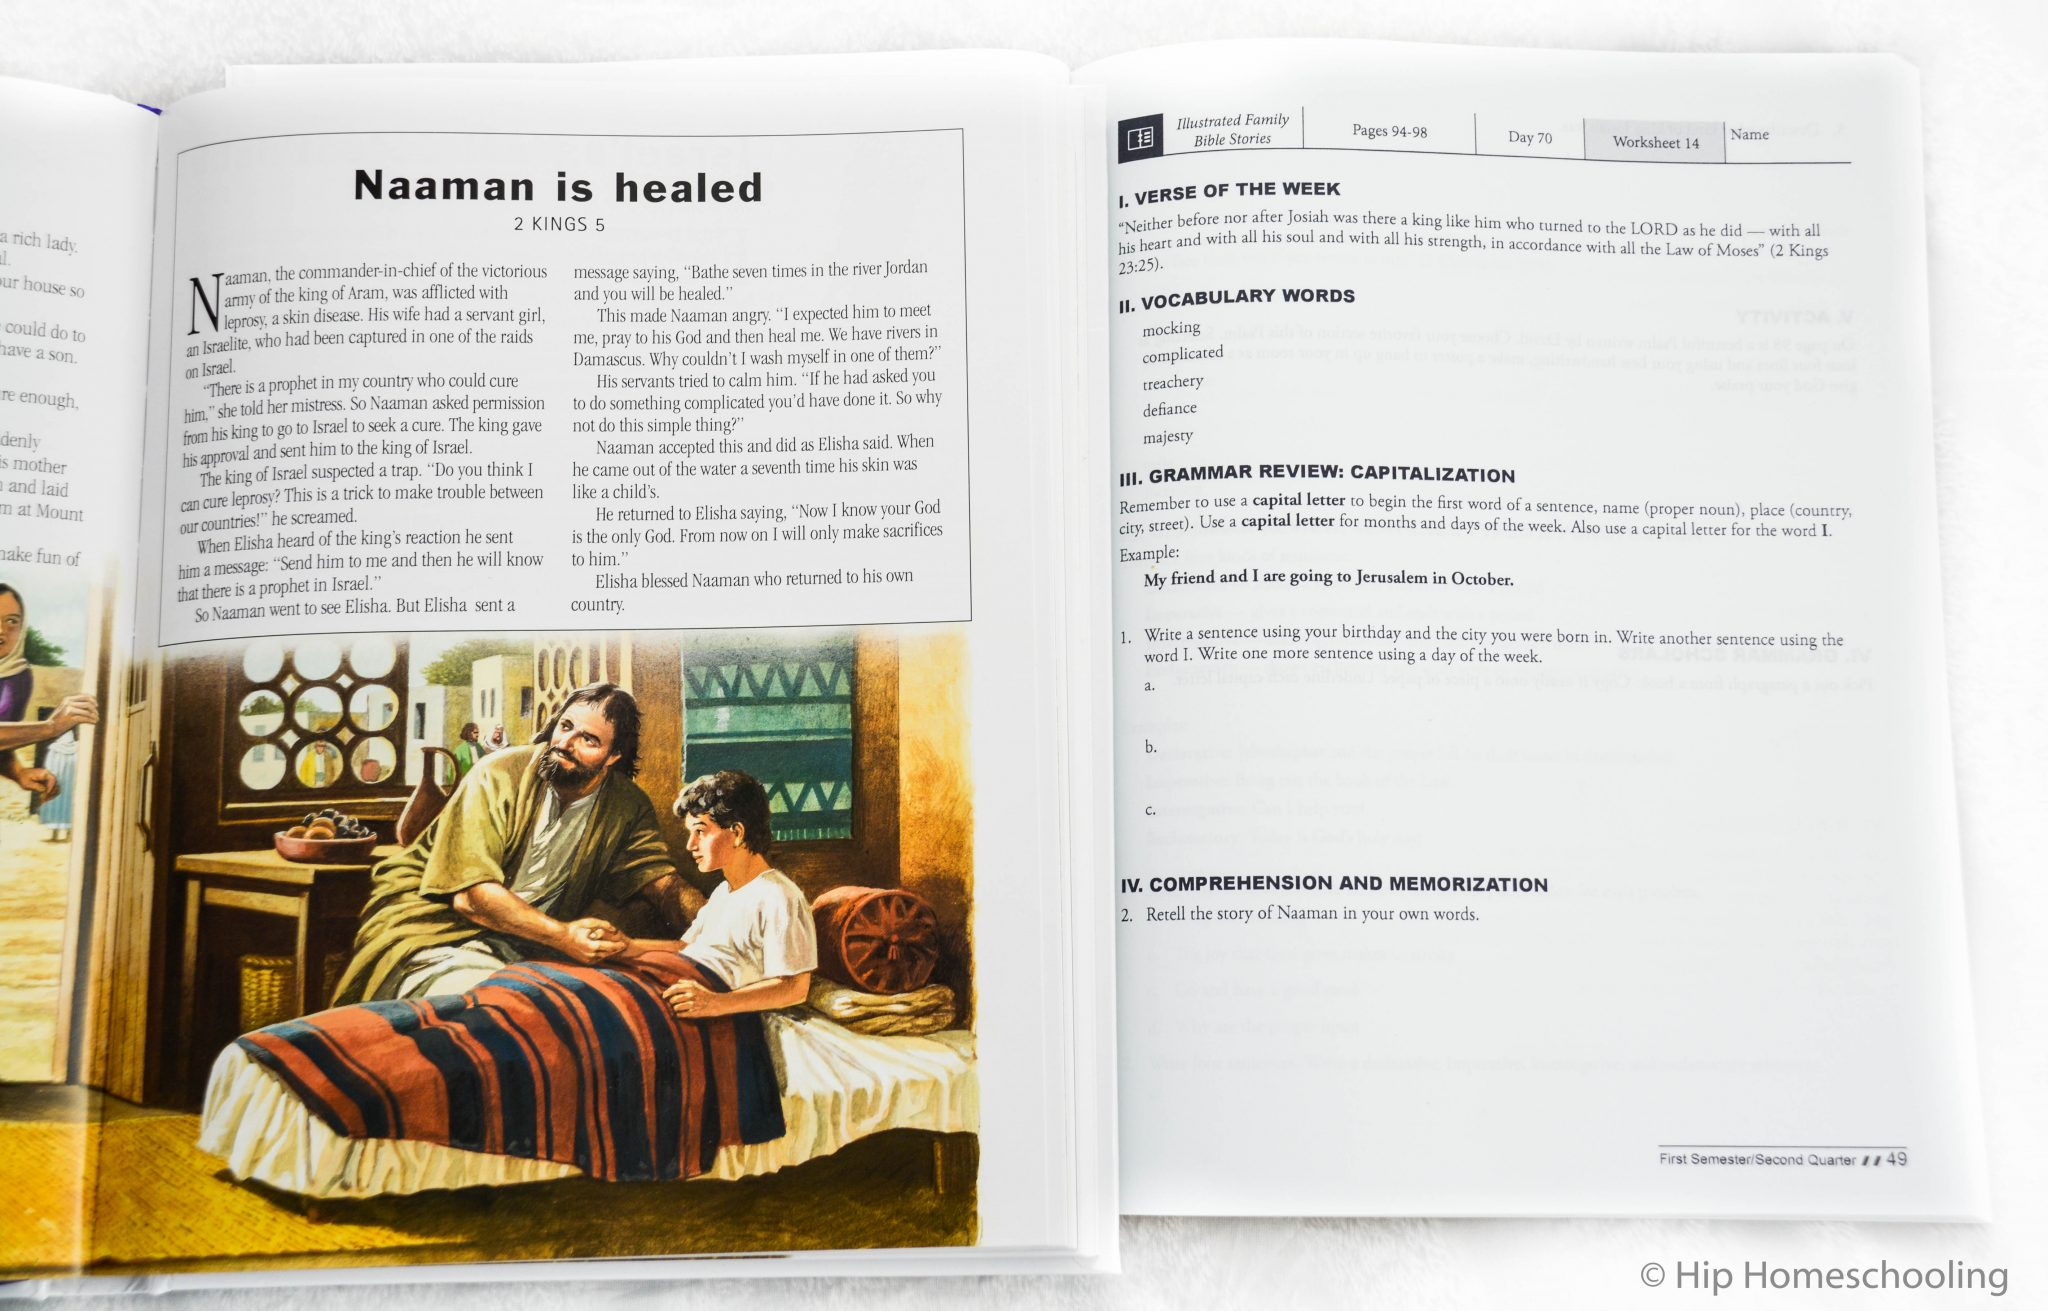 homeschool bible curriculum review, come learn grammar using scripture with your kids! elementary bible curriculum | homeschool bible | homeschool bible lessons | grade 3 bible | grade 4 bible | curriculum review | bible curriculum review | master books | grade 5 bible | grade 6 bible